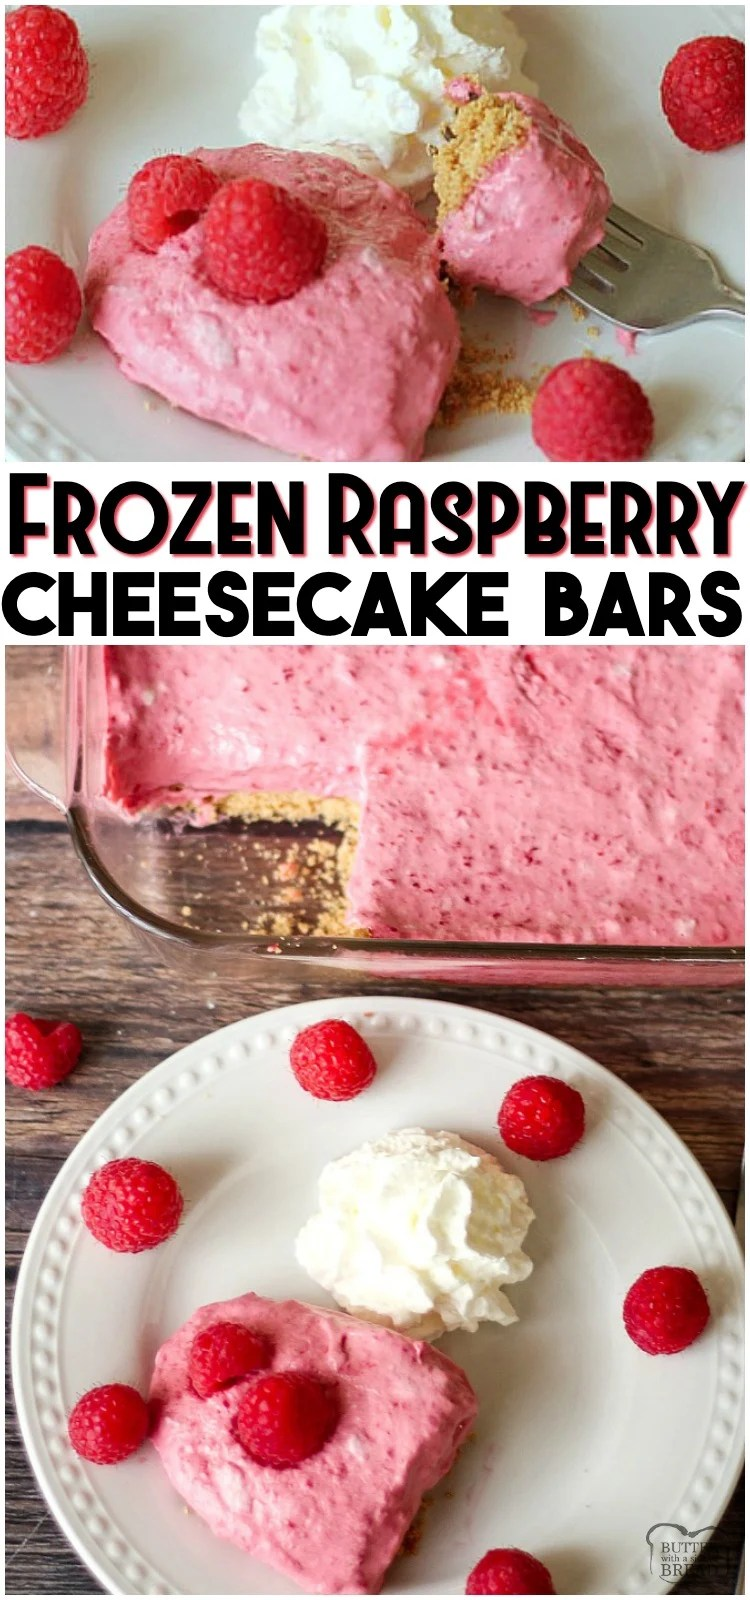 Frozen Raspberry Cheesecake Bars are a simple dessert made by combining cheesecake & raspberries. Sweet, creamy and delicious no-bake raspberry cheesecake recipe can be made ahead and comes together quick. #cheesecake #frozen #raspberry #dessert #raspberries #recipe from BUTTER WITH A SIDE OF BREAD